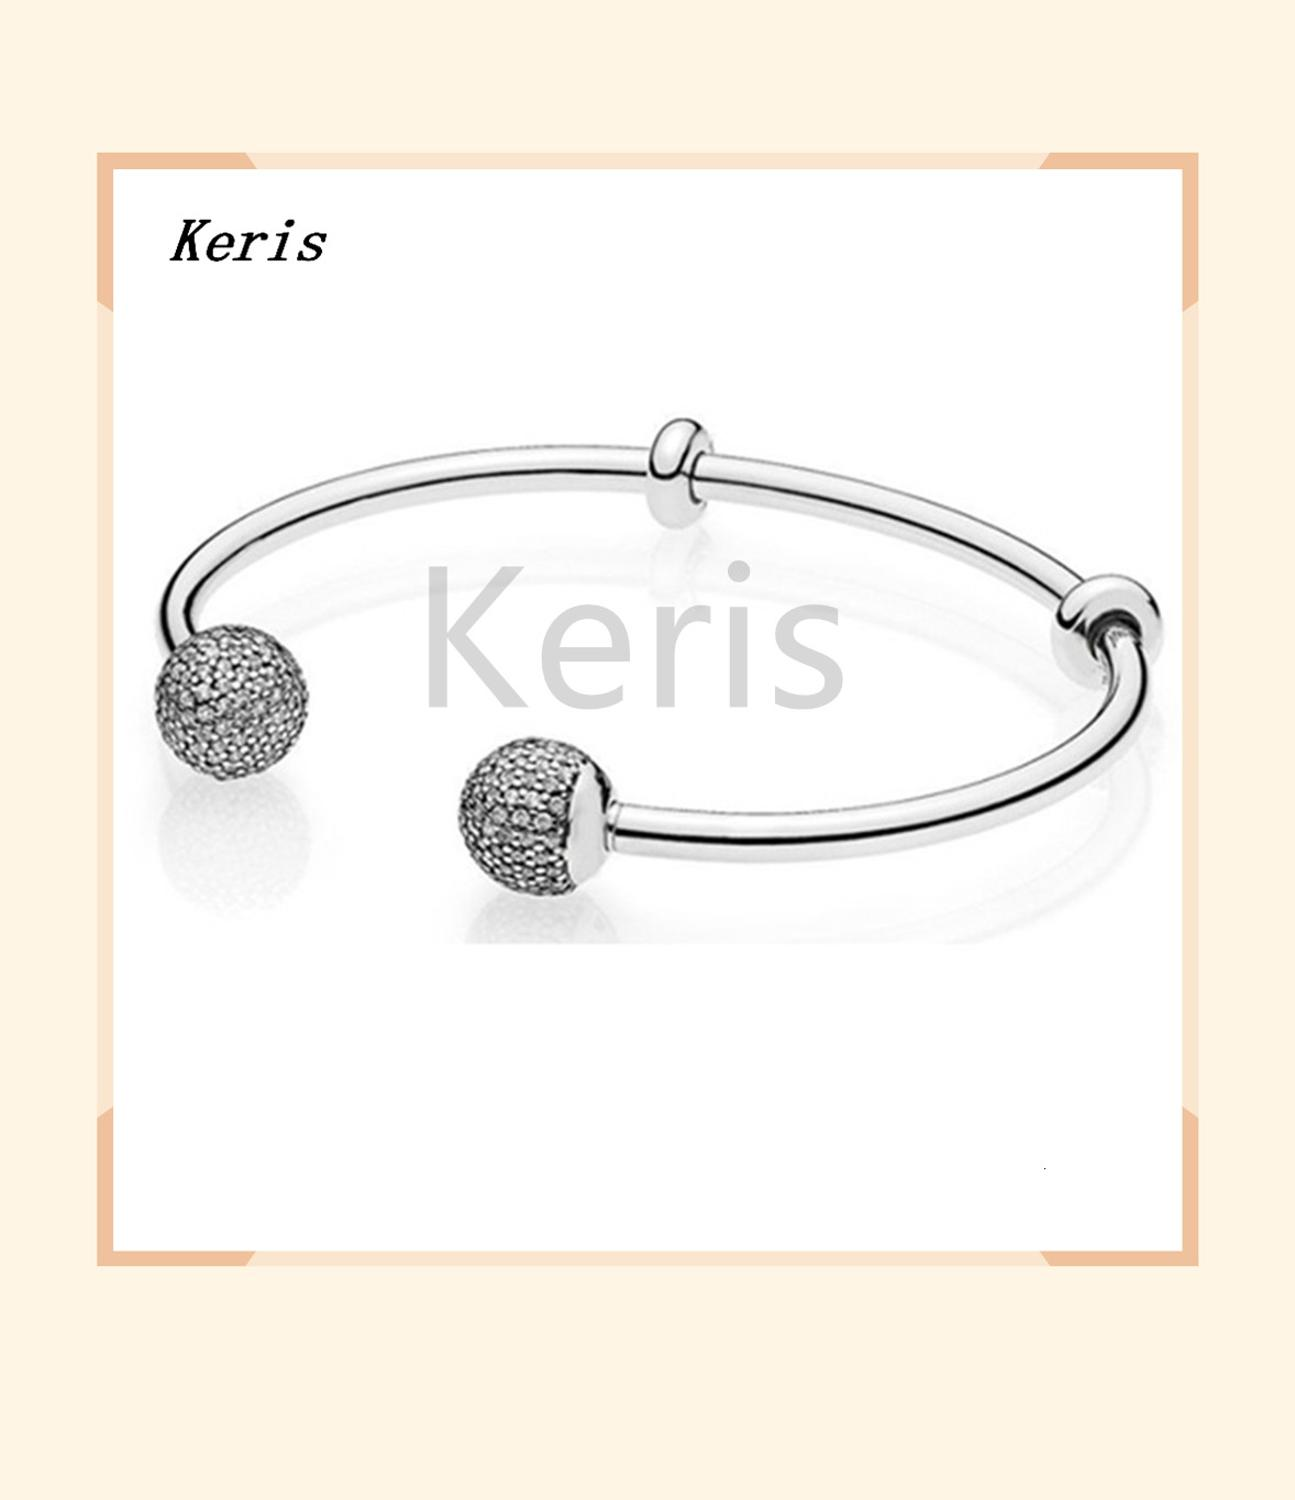 The Last Moments 925 Silver Sterling Double-headed Standard Accounts Wristband Diy A Present Birthday Charm Bracelet 5964cz